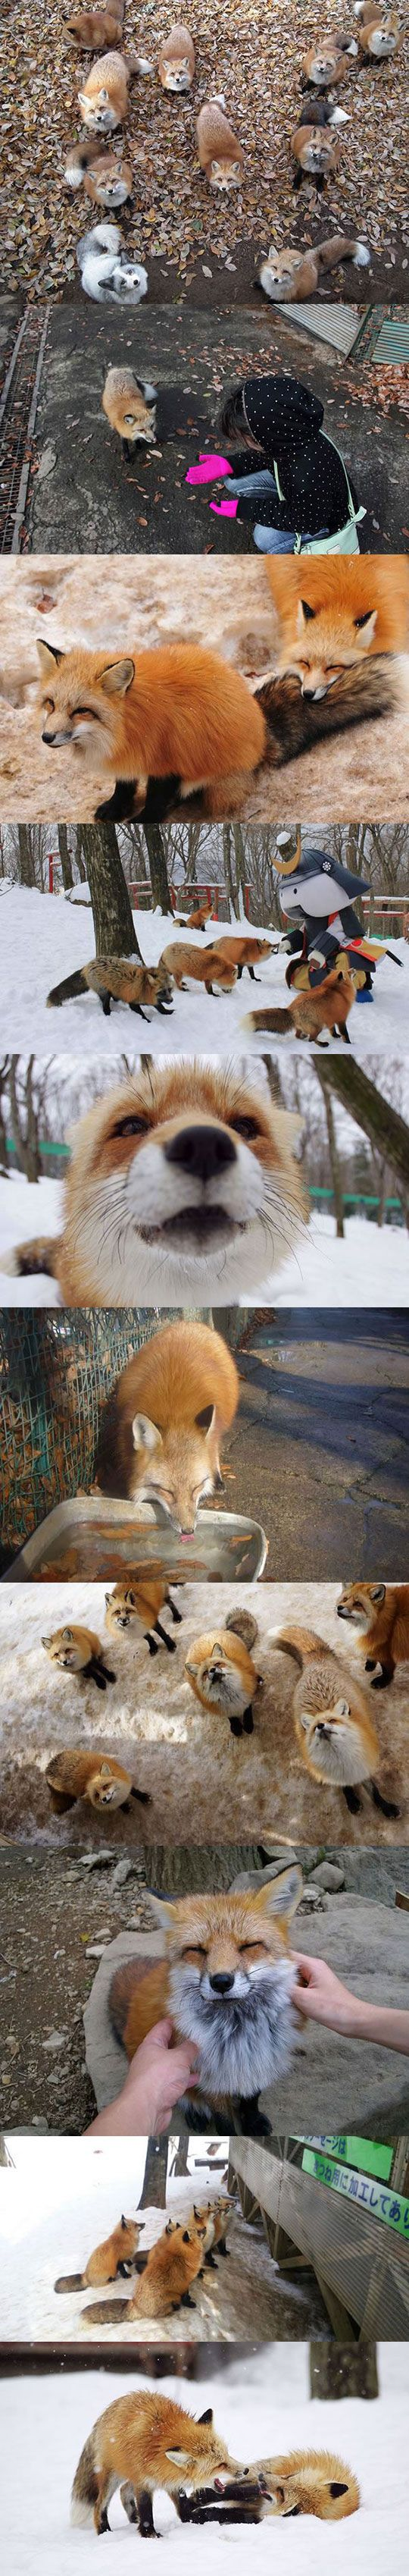 Fox Village In Japan..... so we are not going to acknowledge the thing in the 4th picture?